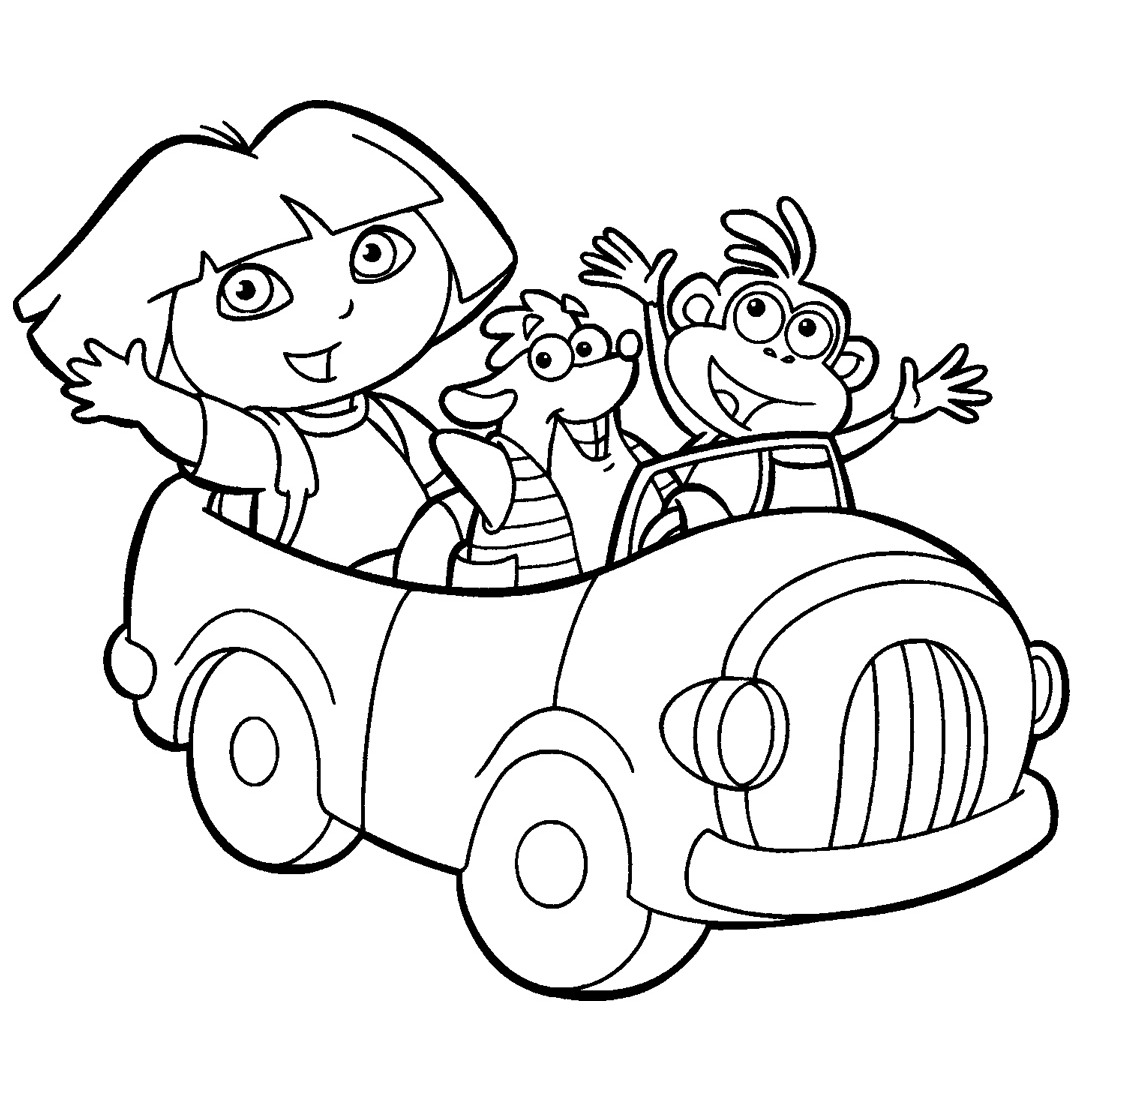 dora to color dora the explorer coloring pages minister coloring to dora color